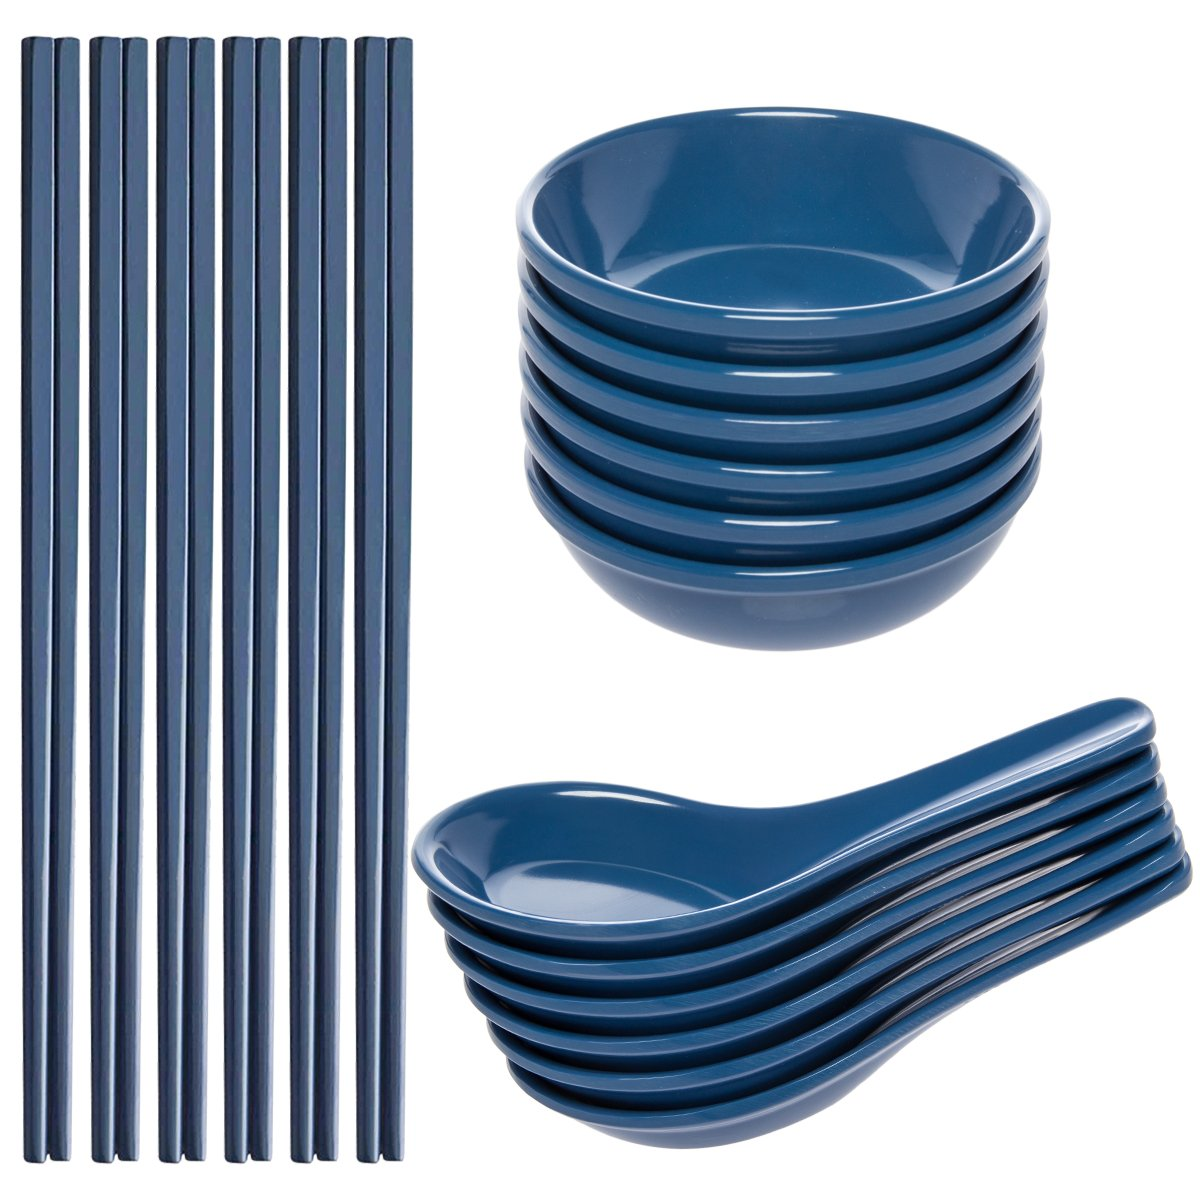 Zak! (24 Piece) Asian Reusable BPA-Free Plastic Utensils Set With Chopsticks, Soup Spoons For Wonton Pho & Ramen, & Small Bowl Dishes For Dipping Sauces Like Soy & Wasabi by Zak!